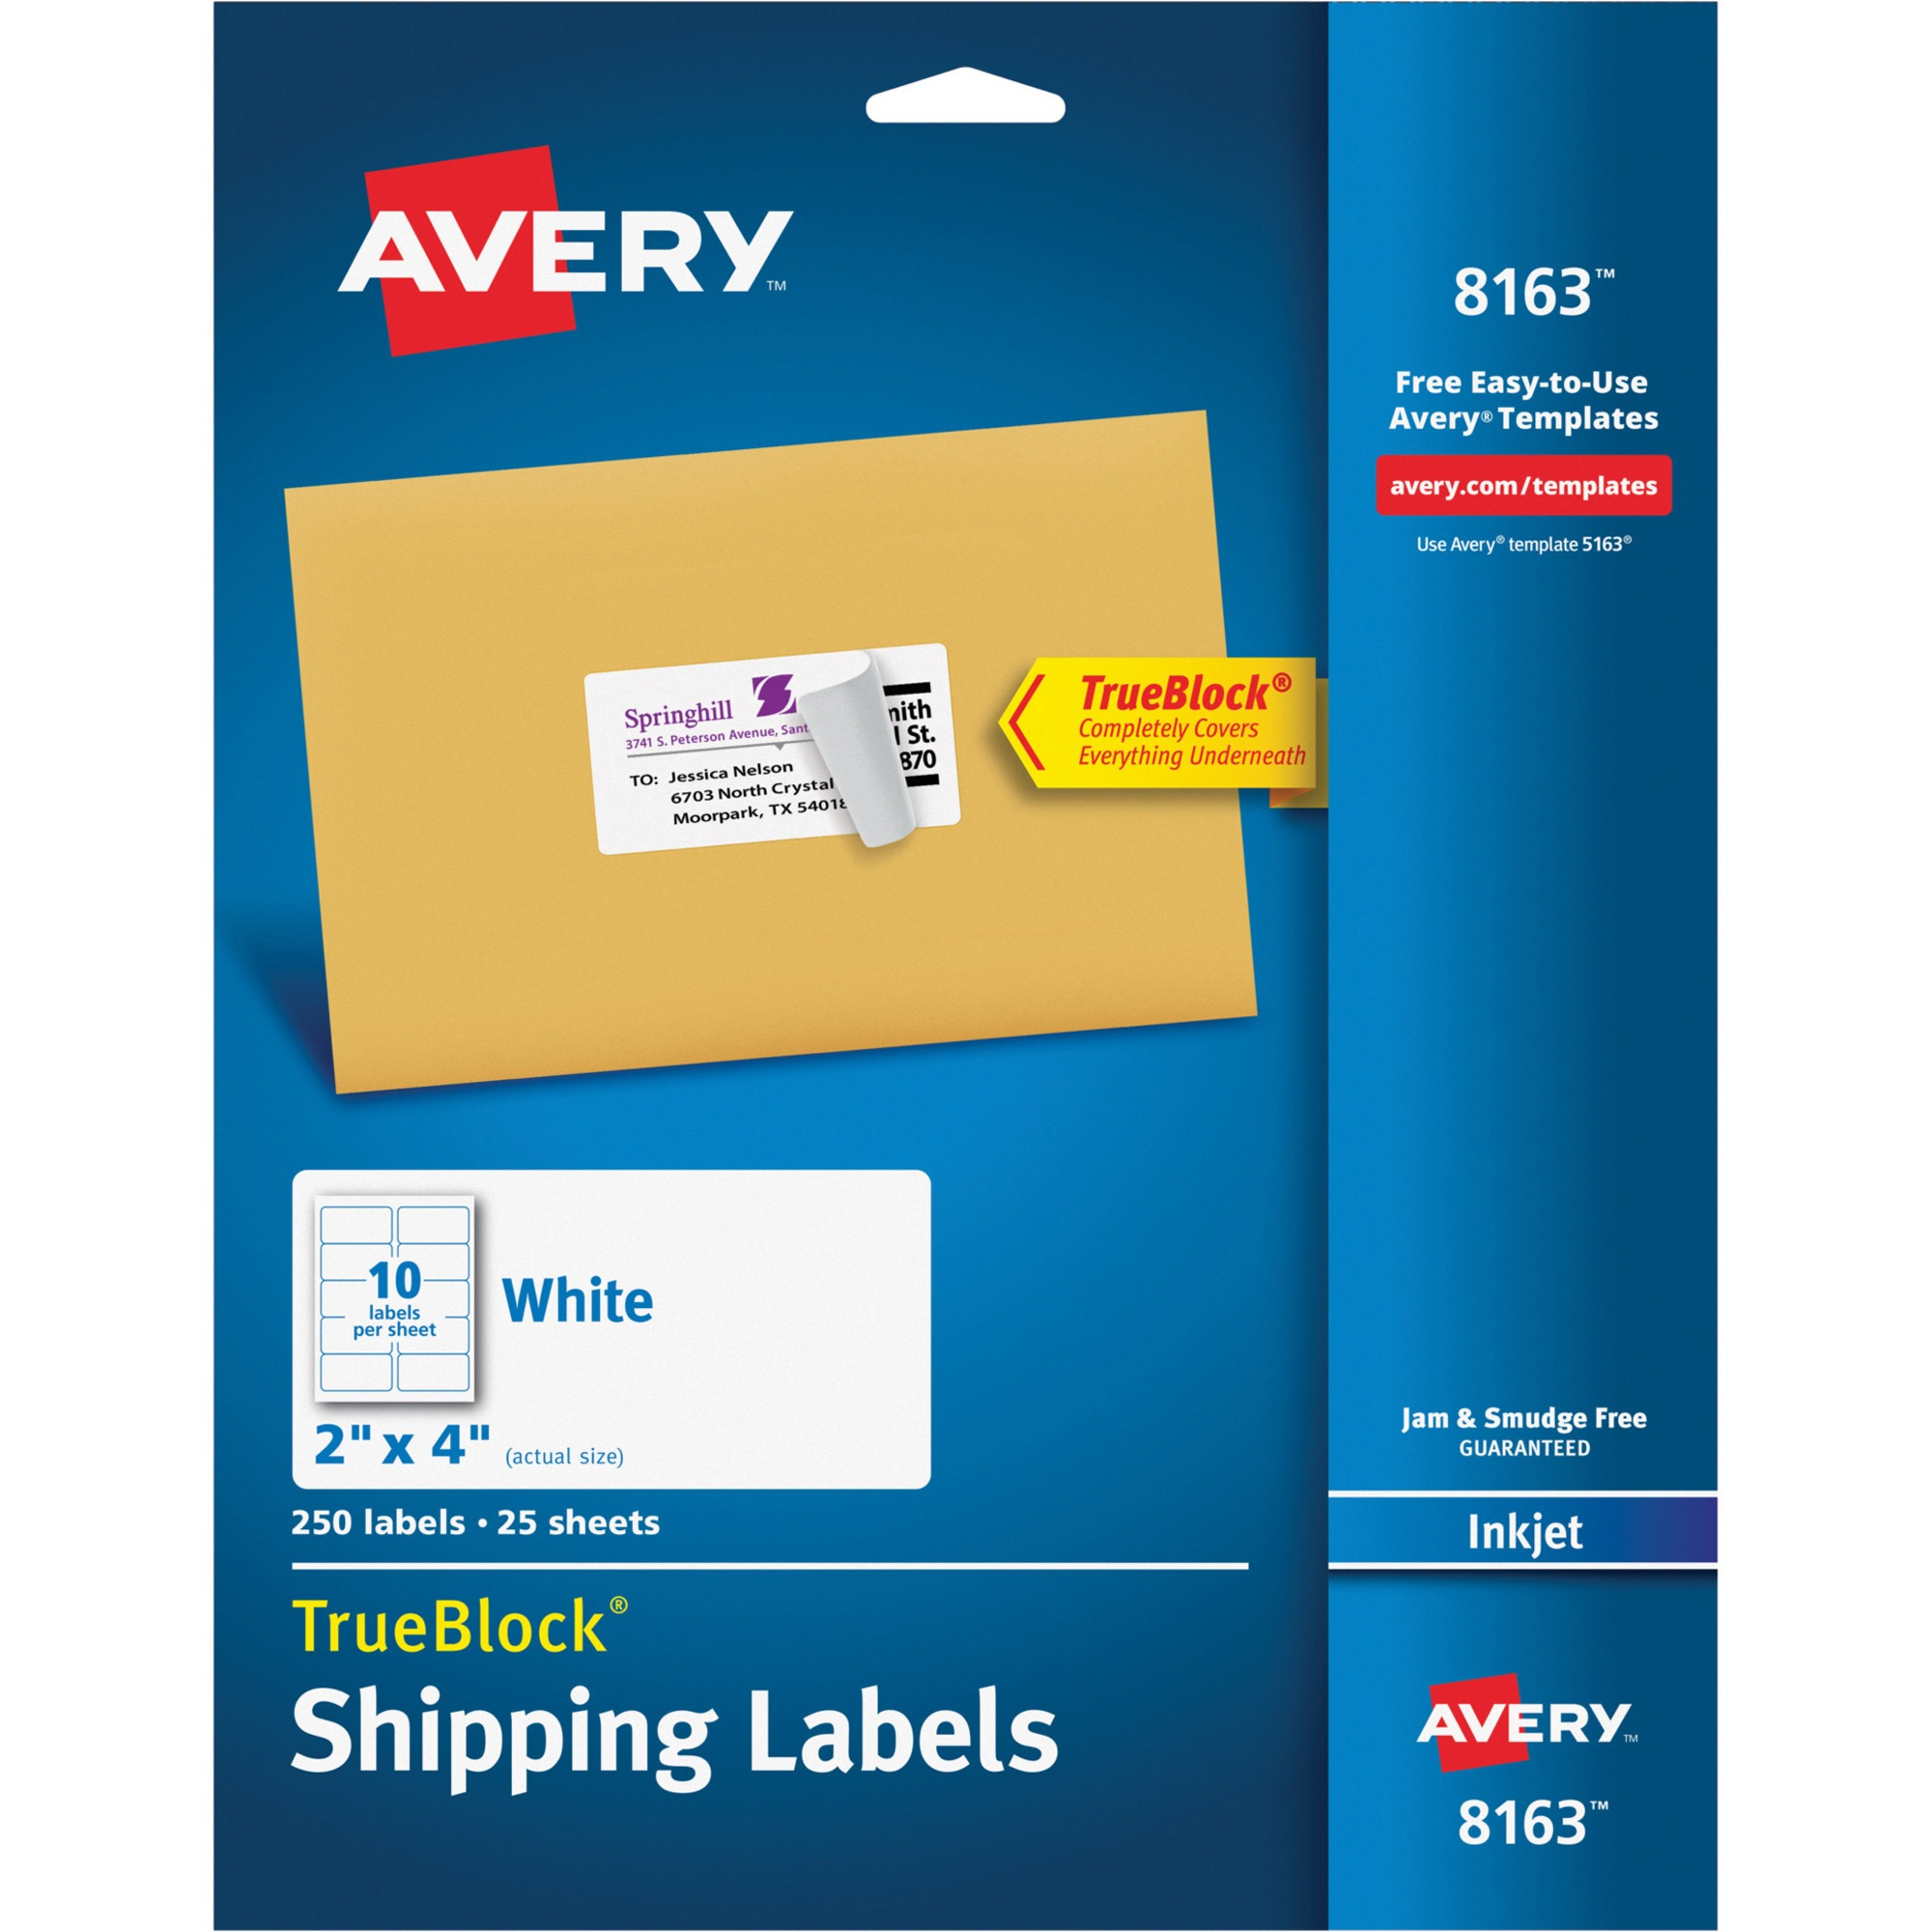 Avery(R) Shipping Labels with TrueBlock(R) Technology for Inkjet ...